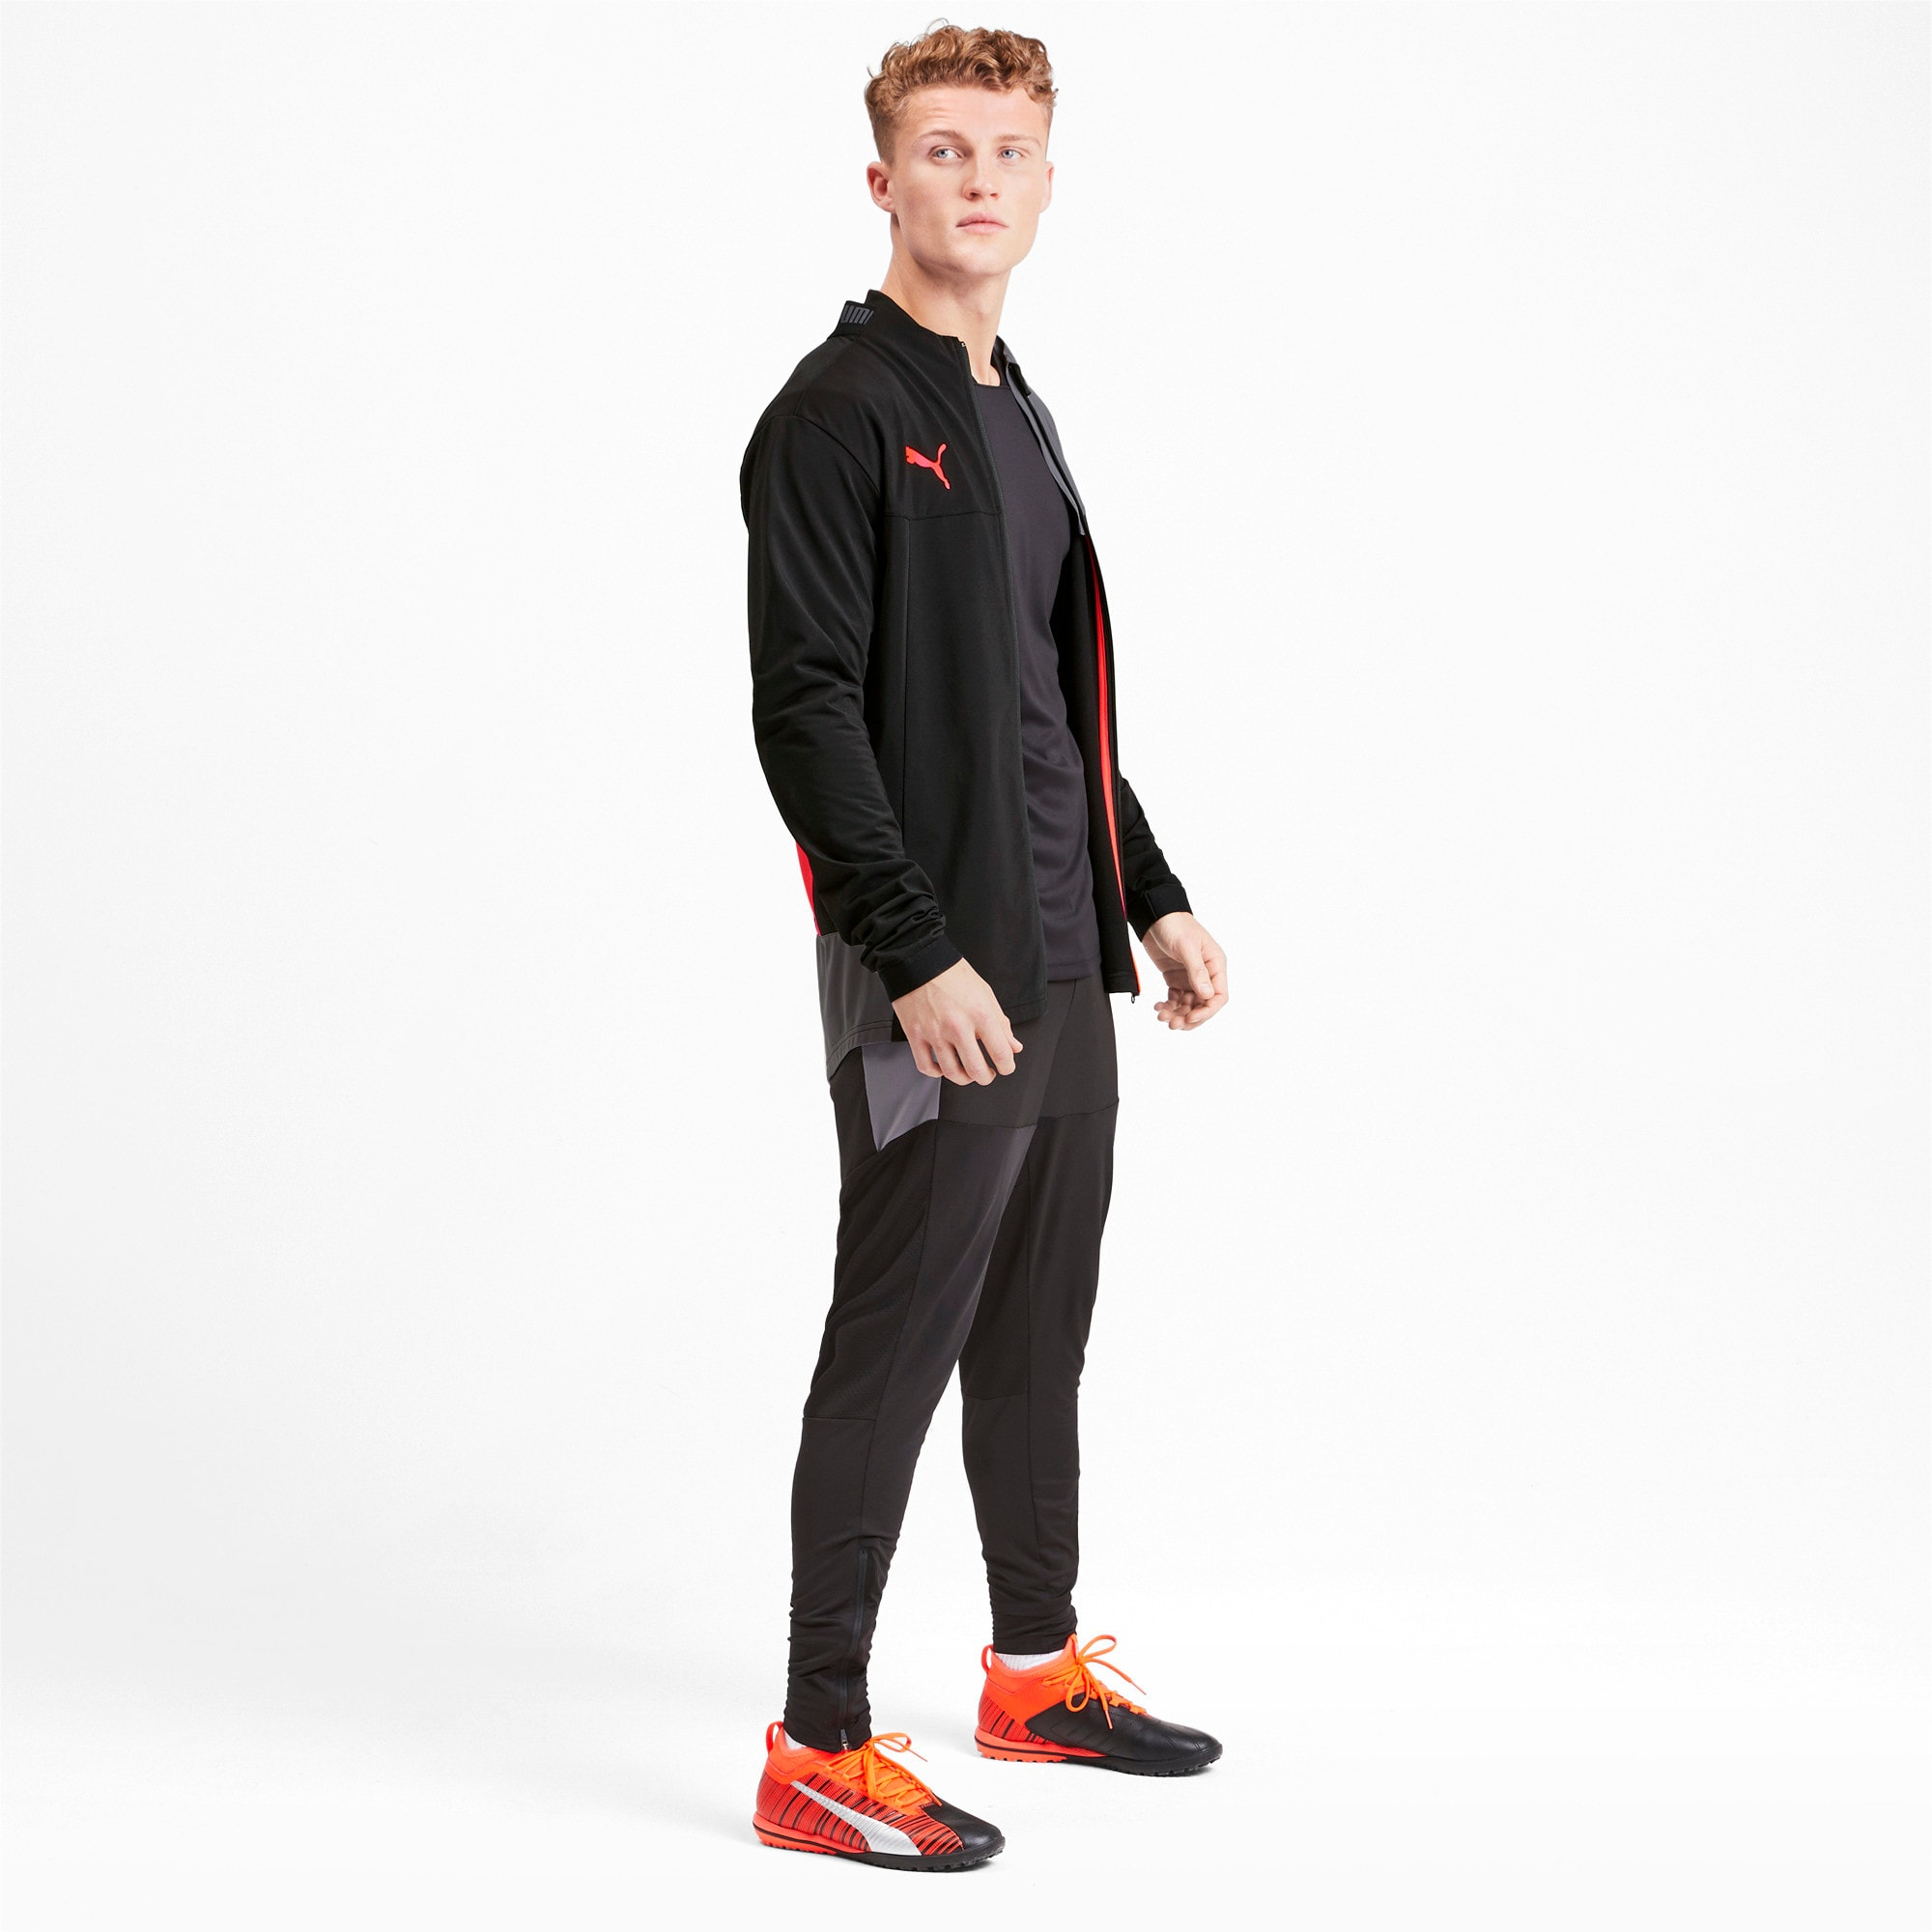 Thumbnail 3 of Trainingsjack voor heren, Puma Black-Nrgy Red, medium